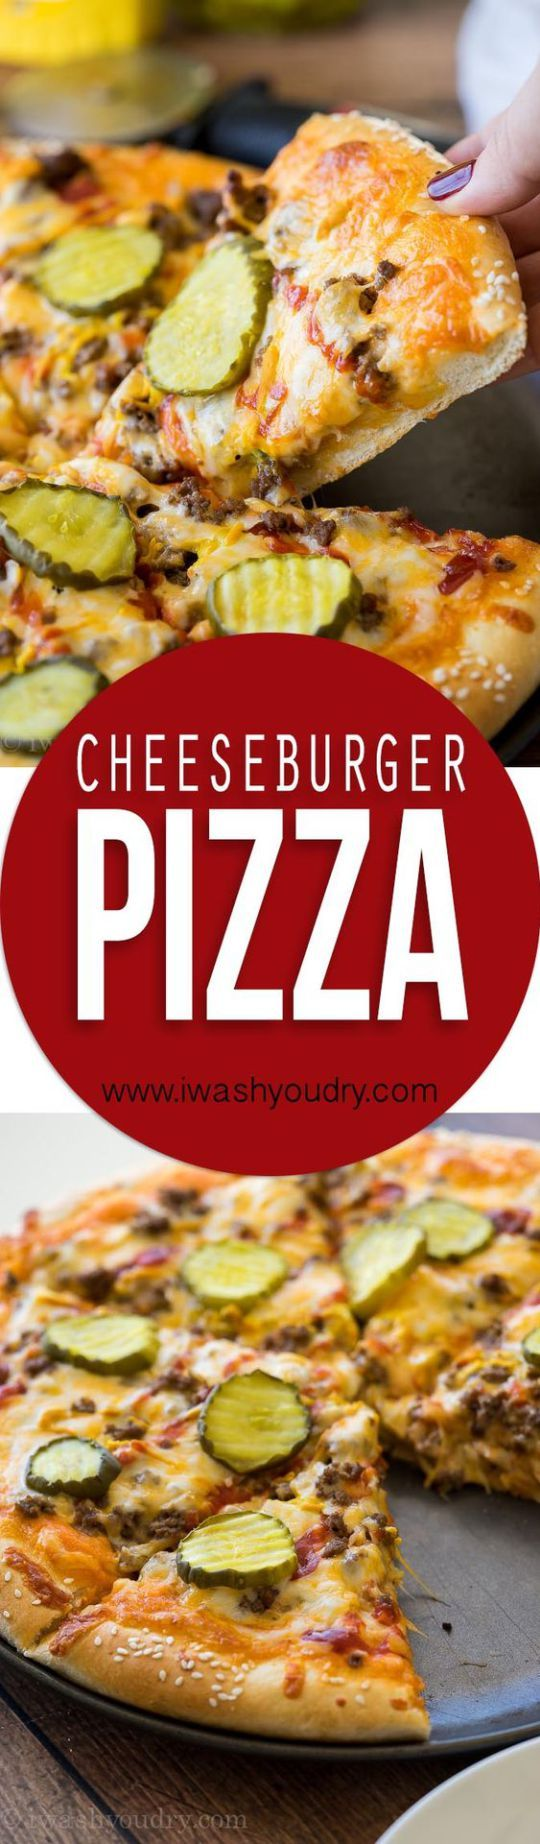 """Cheeseburger Pizza Recipe via I Wash... You Dry - """"My whole family LOVED this Cheeseburger Pizza! We make it at least once a month now!"""""""